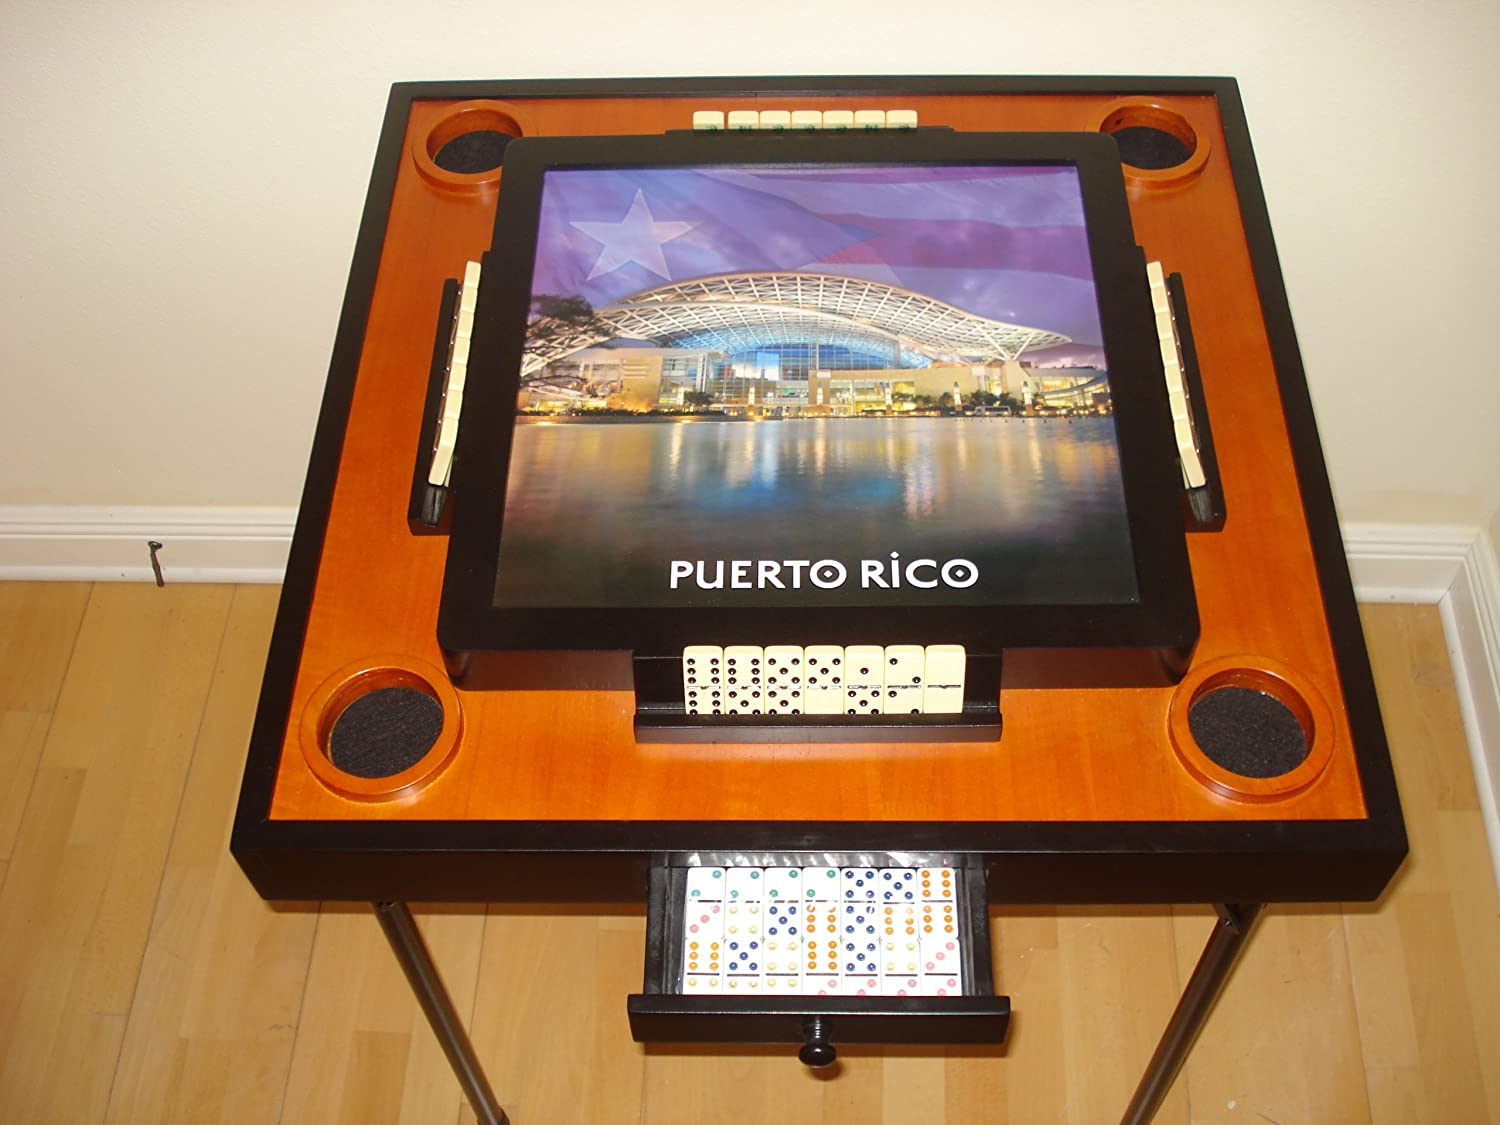 Amazon.com: Puerto Rico (Convention Center) Domino Table and Game Set: Toys & Games